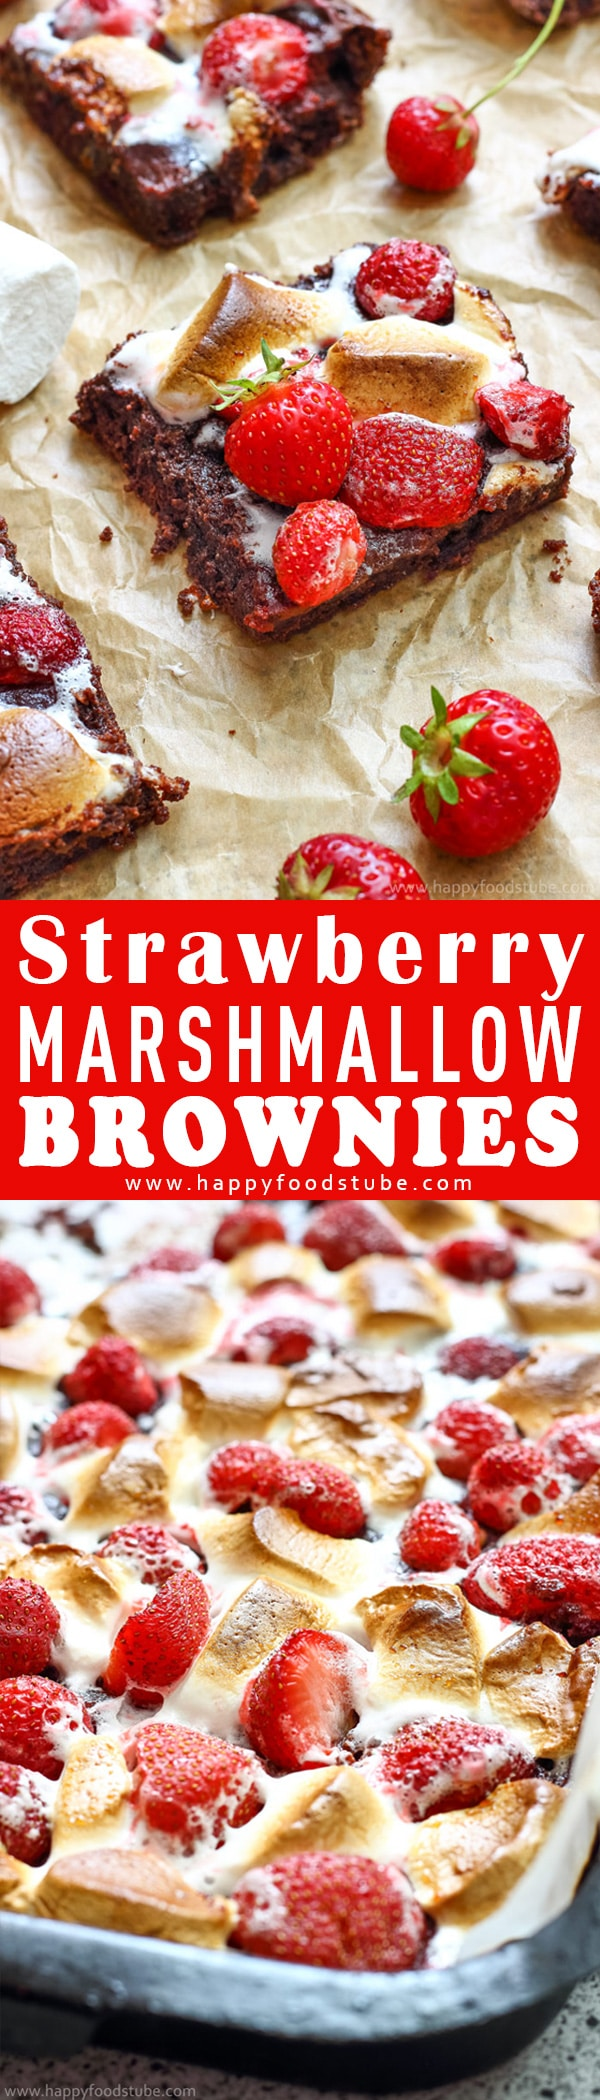 These Strawberry Marshmallow Brownies are the best brownies you'll ever eat! Rich and chewy on the inside and gooey on the outside. Easy to make dessert recipe. Best Strawberry Brownies from scratch